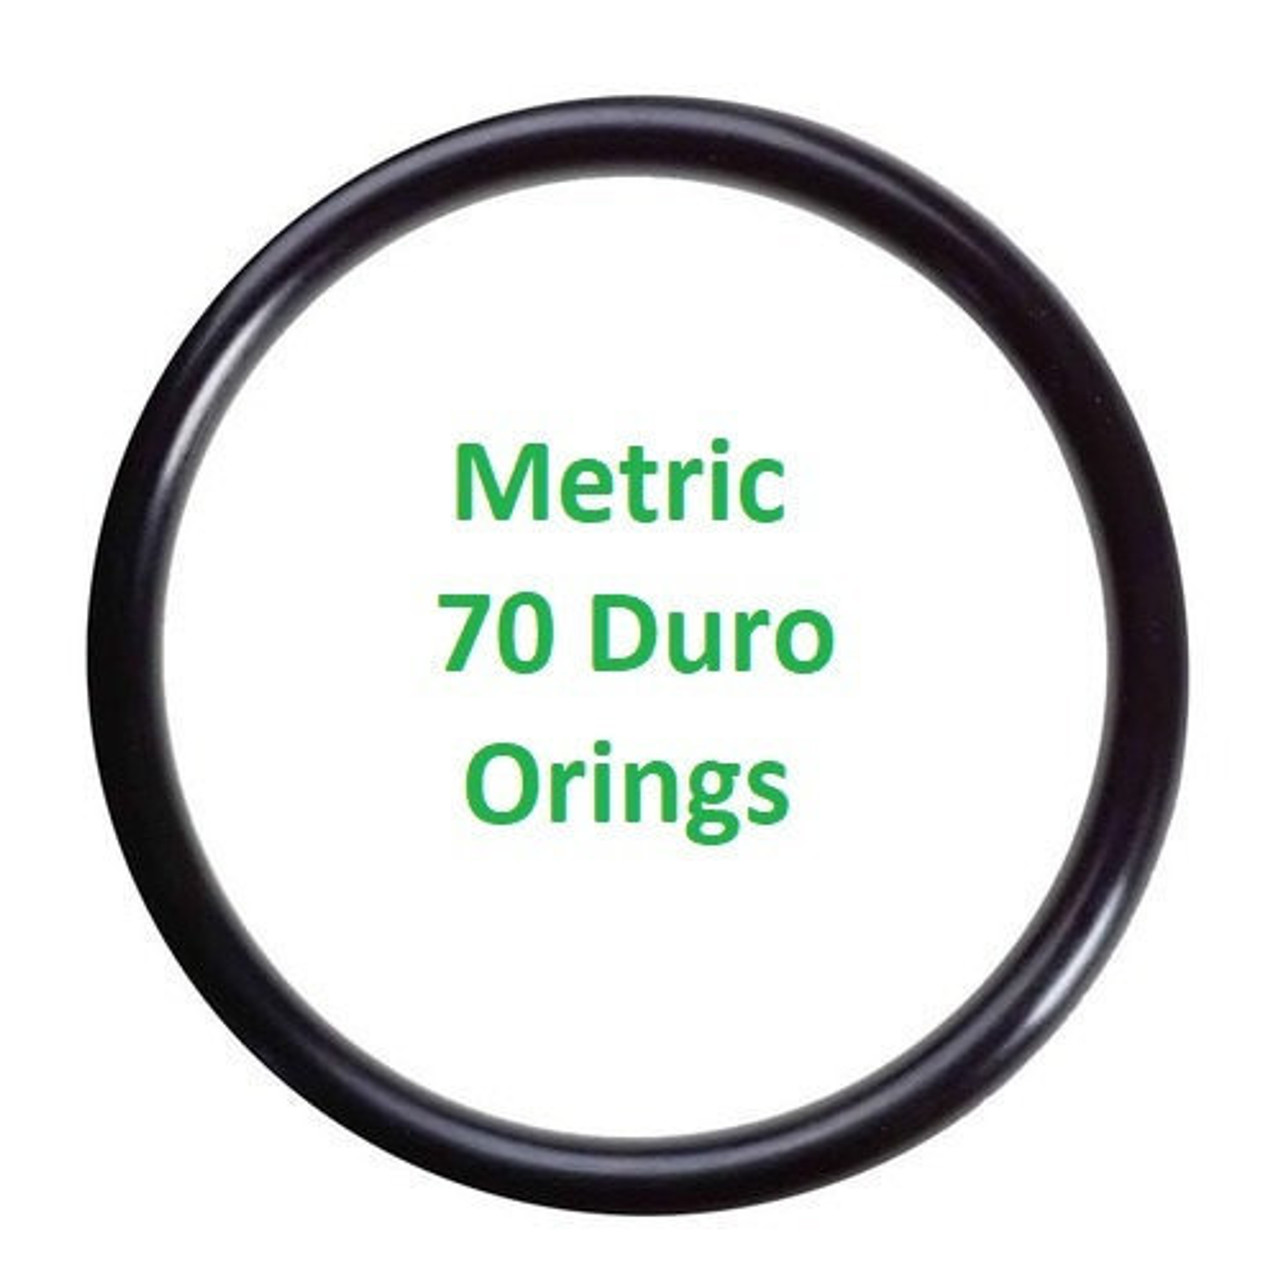 Metric Buna  O-rings 12 x 1.5mm  JIS S12.5 Price for 25 pcs